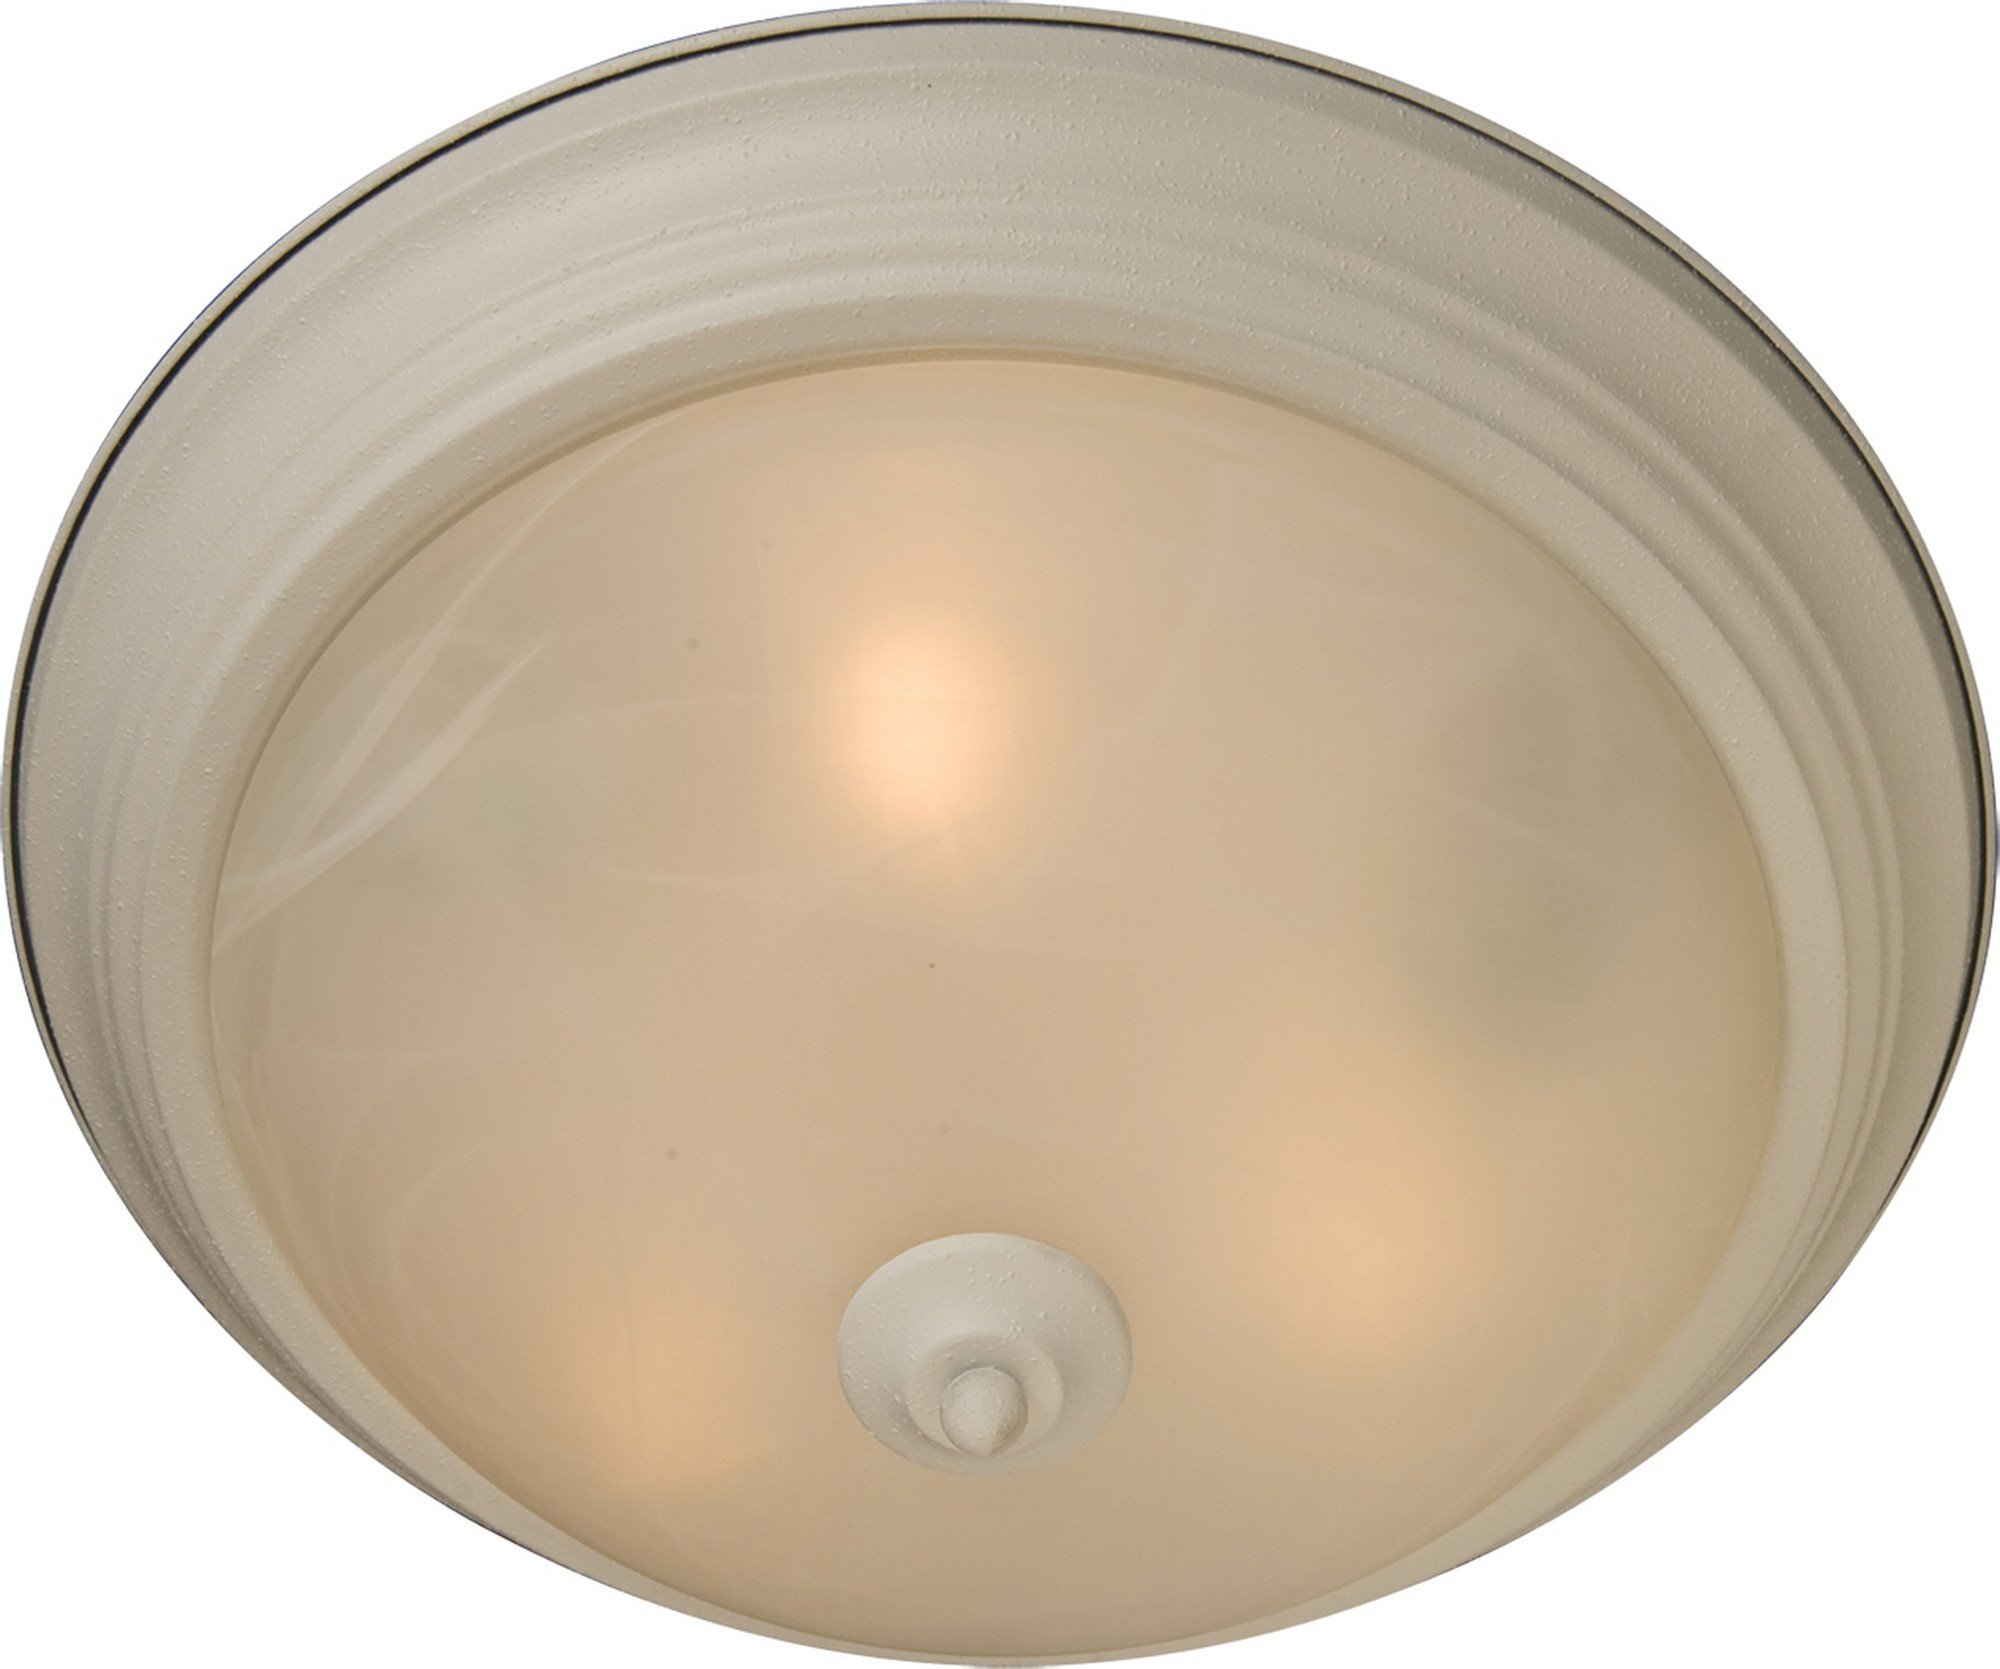 Maxim 5840MRTW Essentials 1-Light Flush Mount, Textured White Finish, Marble Glass, MB Incandescent Incandescent Bulb , 100W Max., Damp Safety Rating, Standard Dimmable, Glass Shade Material, 4600 Rated Lumens